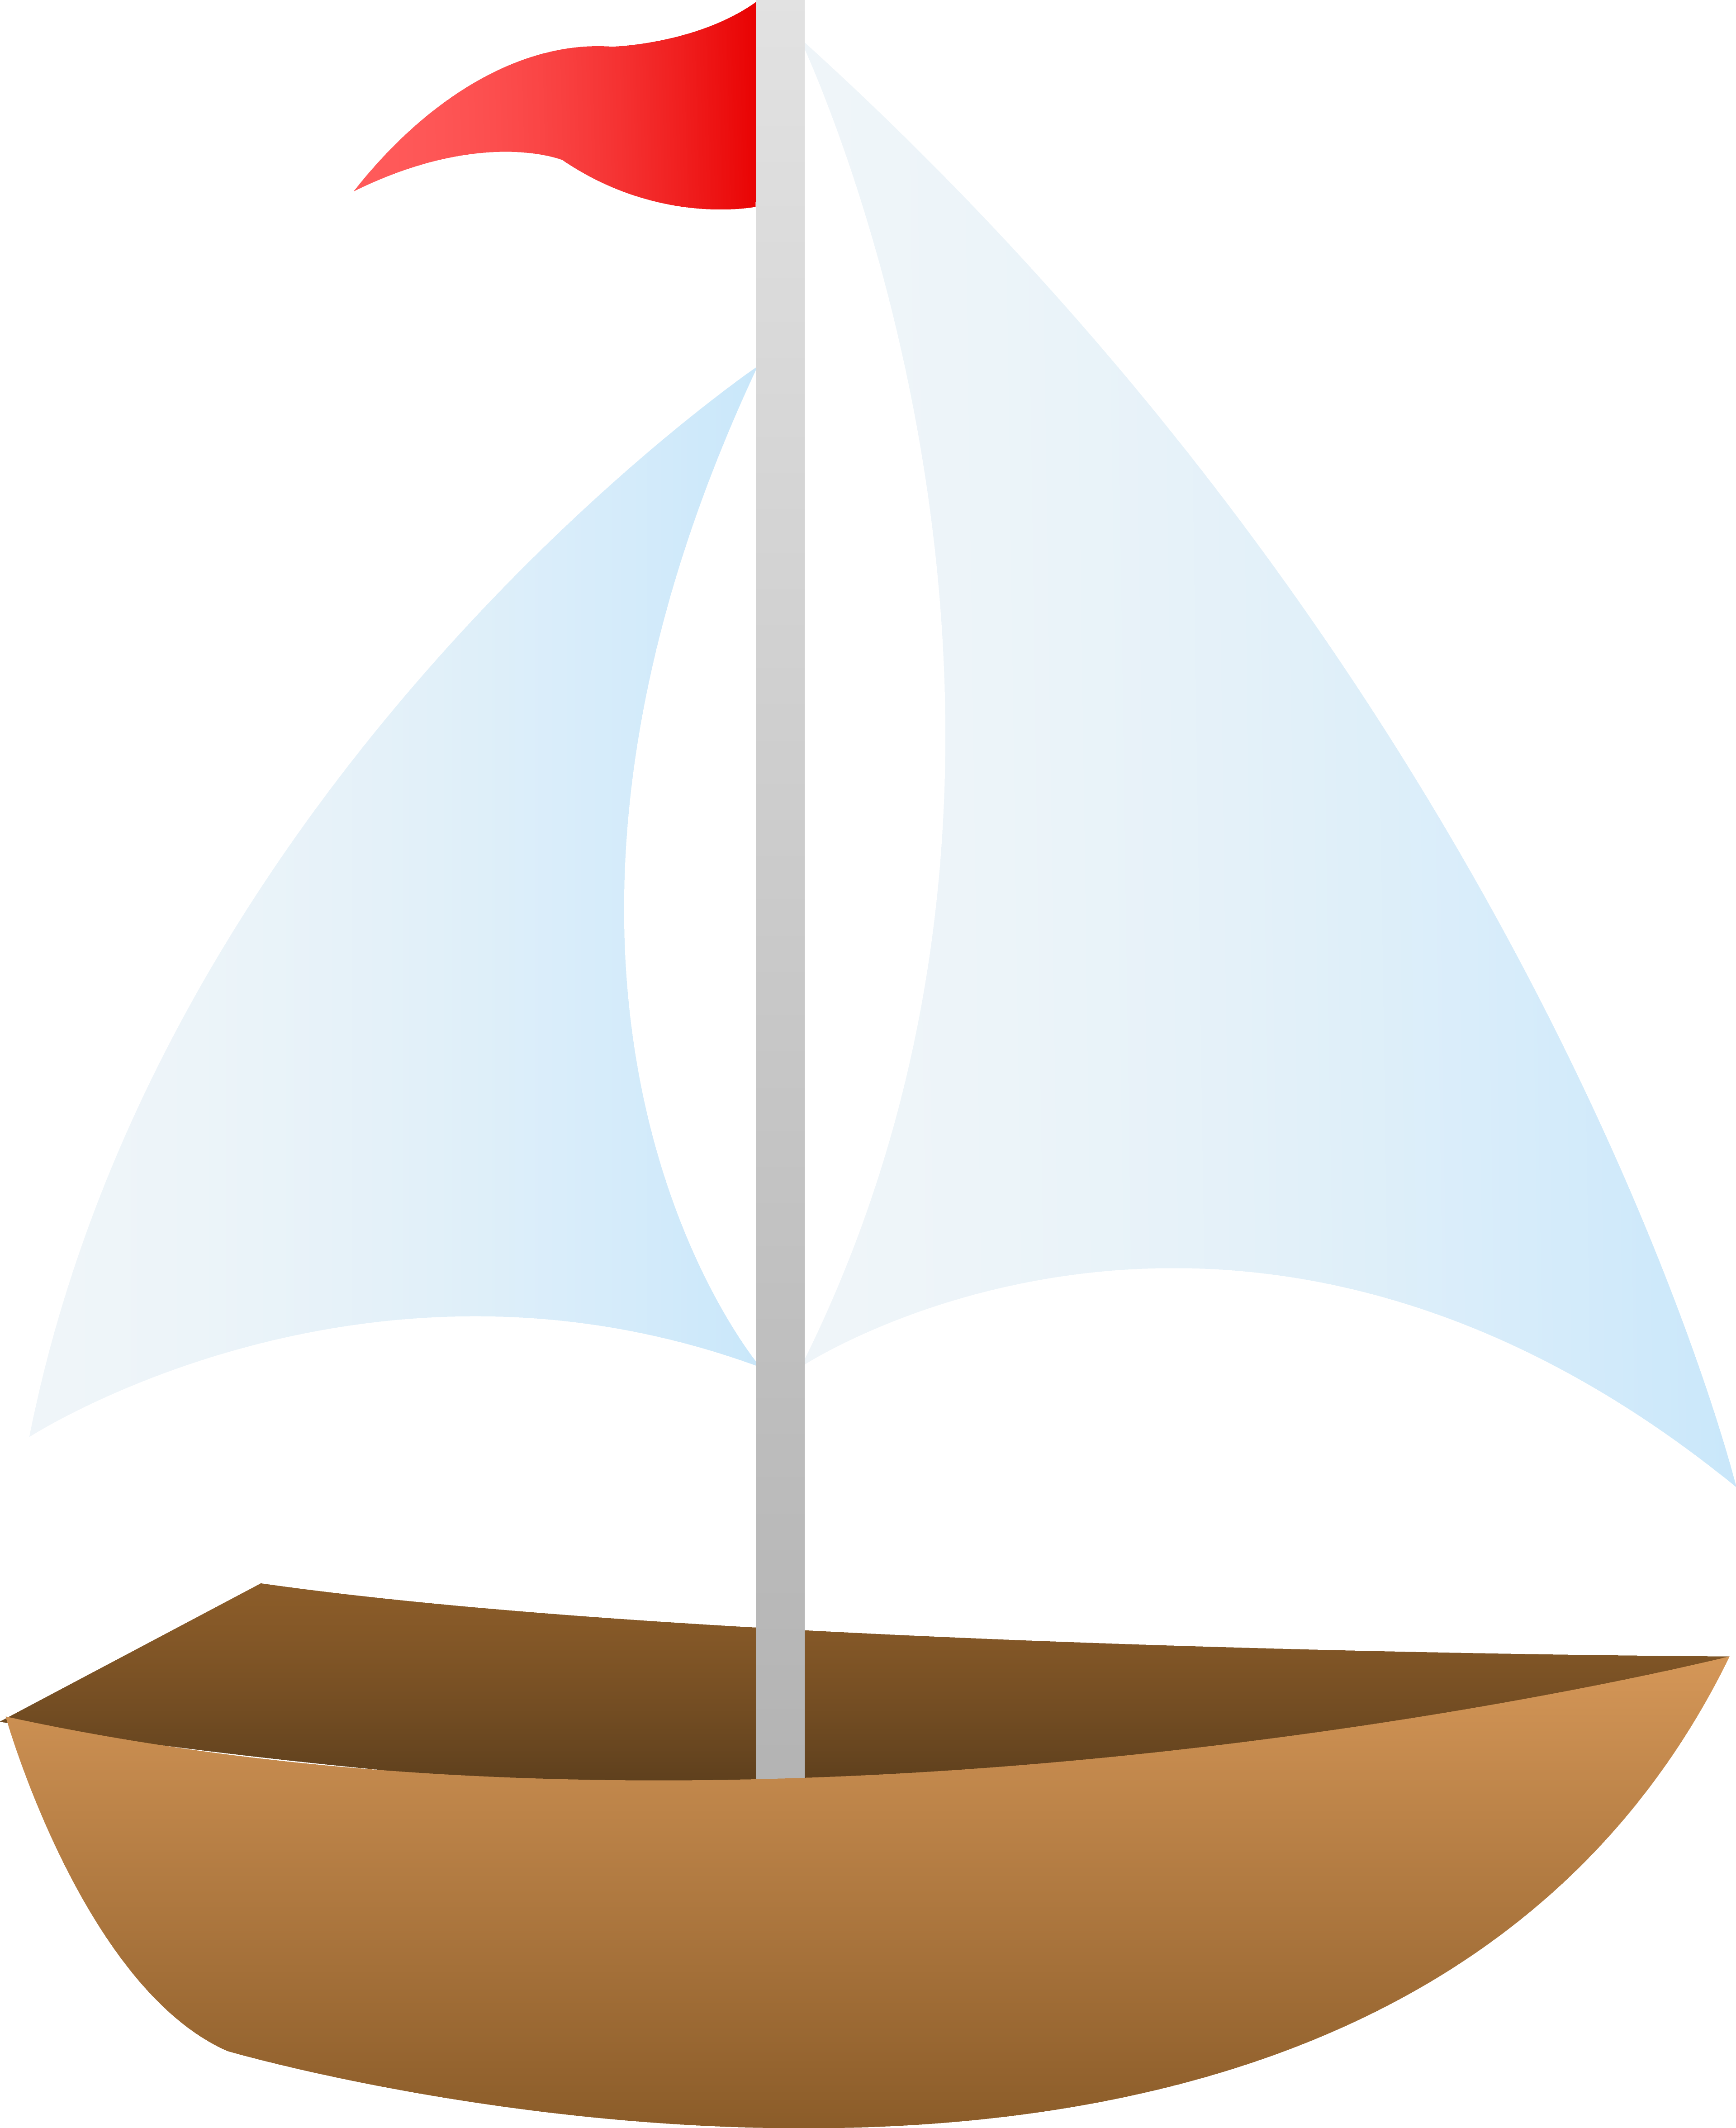 Red clipart sailboat. Free